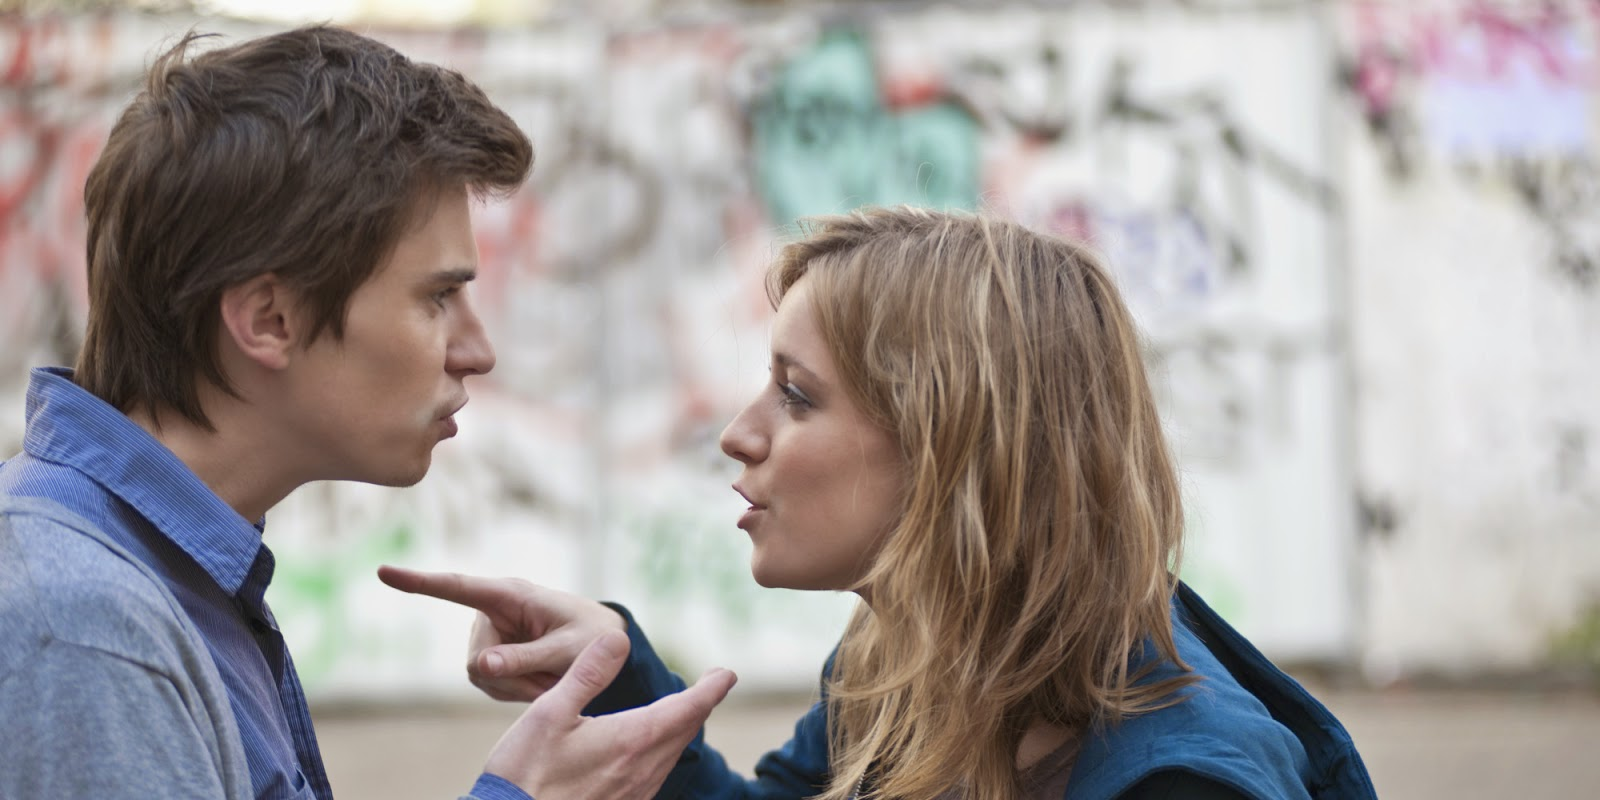 Relationship advice for getting through life's ups and downs